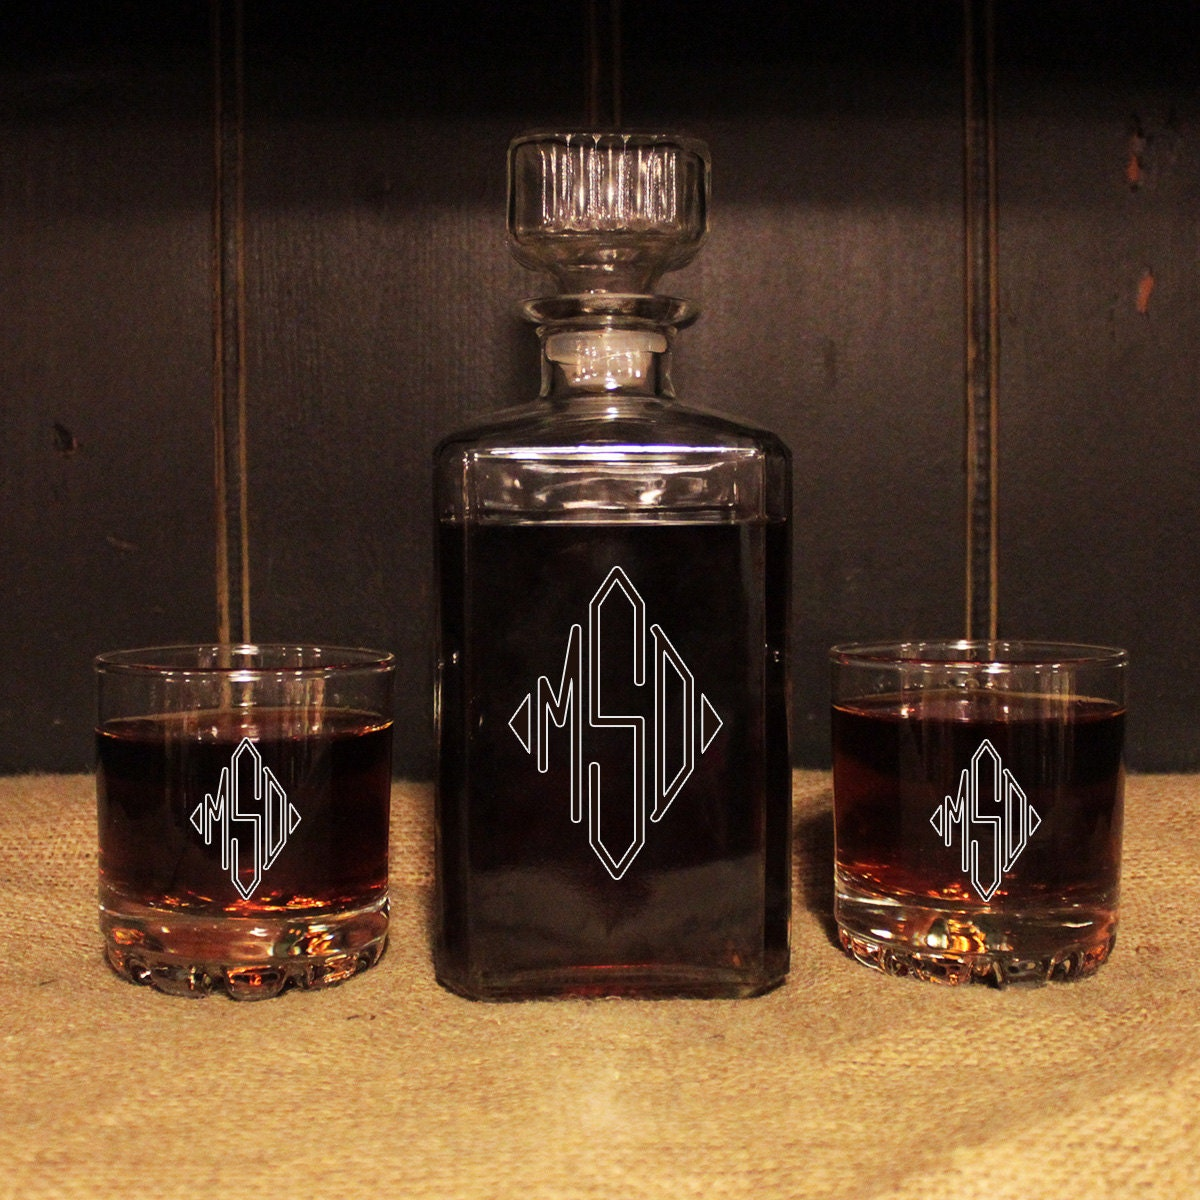 monogrammed glass whiskey decanter set barware personalized. Black Bedroom Furniture Sets. Home Design Ideas